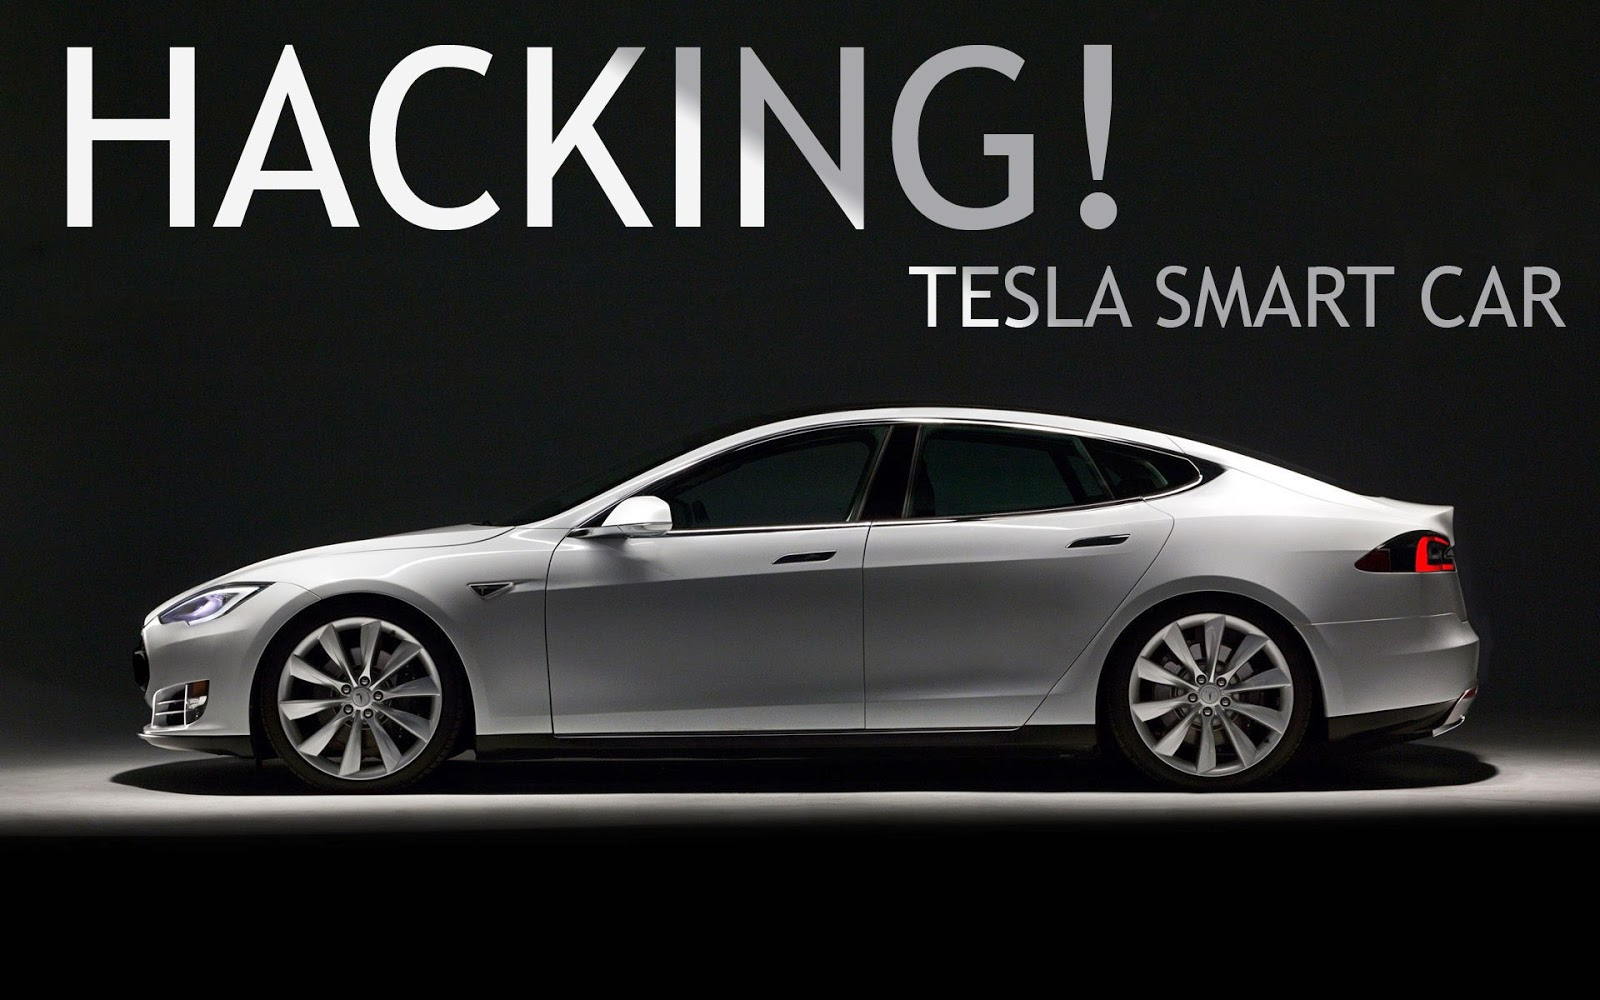 tesla cars can be hacked to locate and unlock remotely